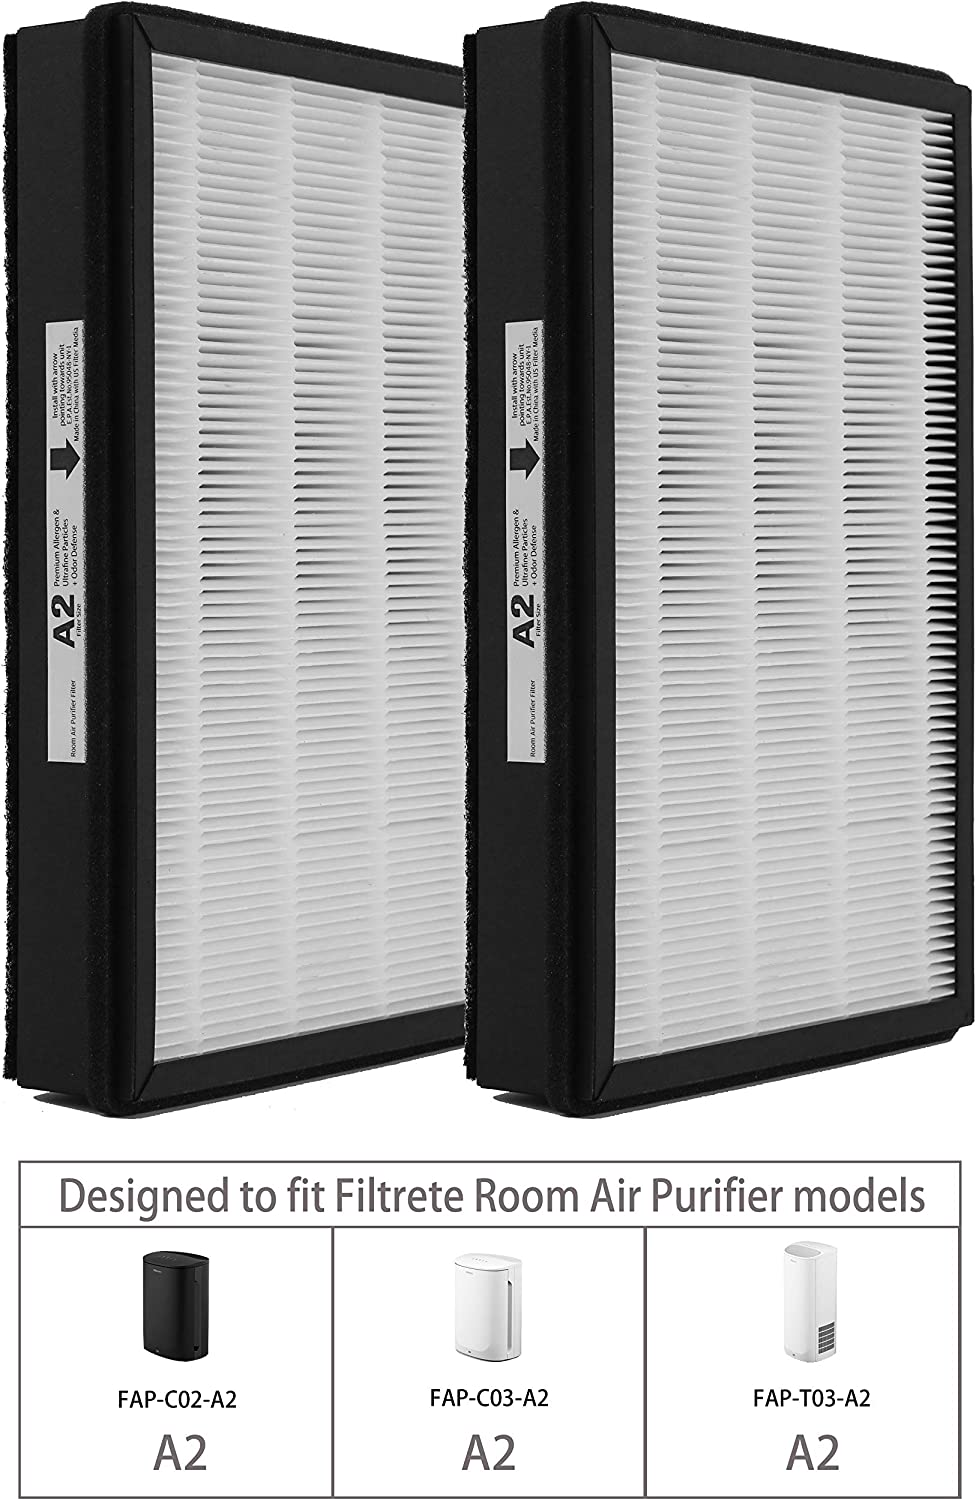 Replacement HEPA A2 Size Filter, Compatible with Filtrete Room Air Purifier Devices, 2 Pack